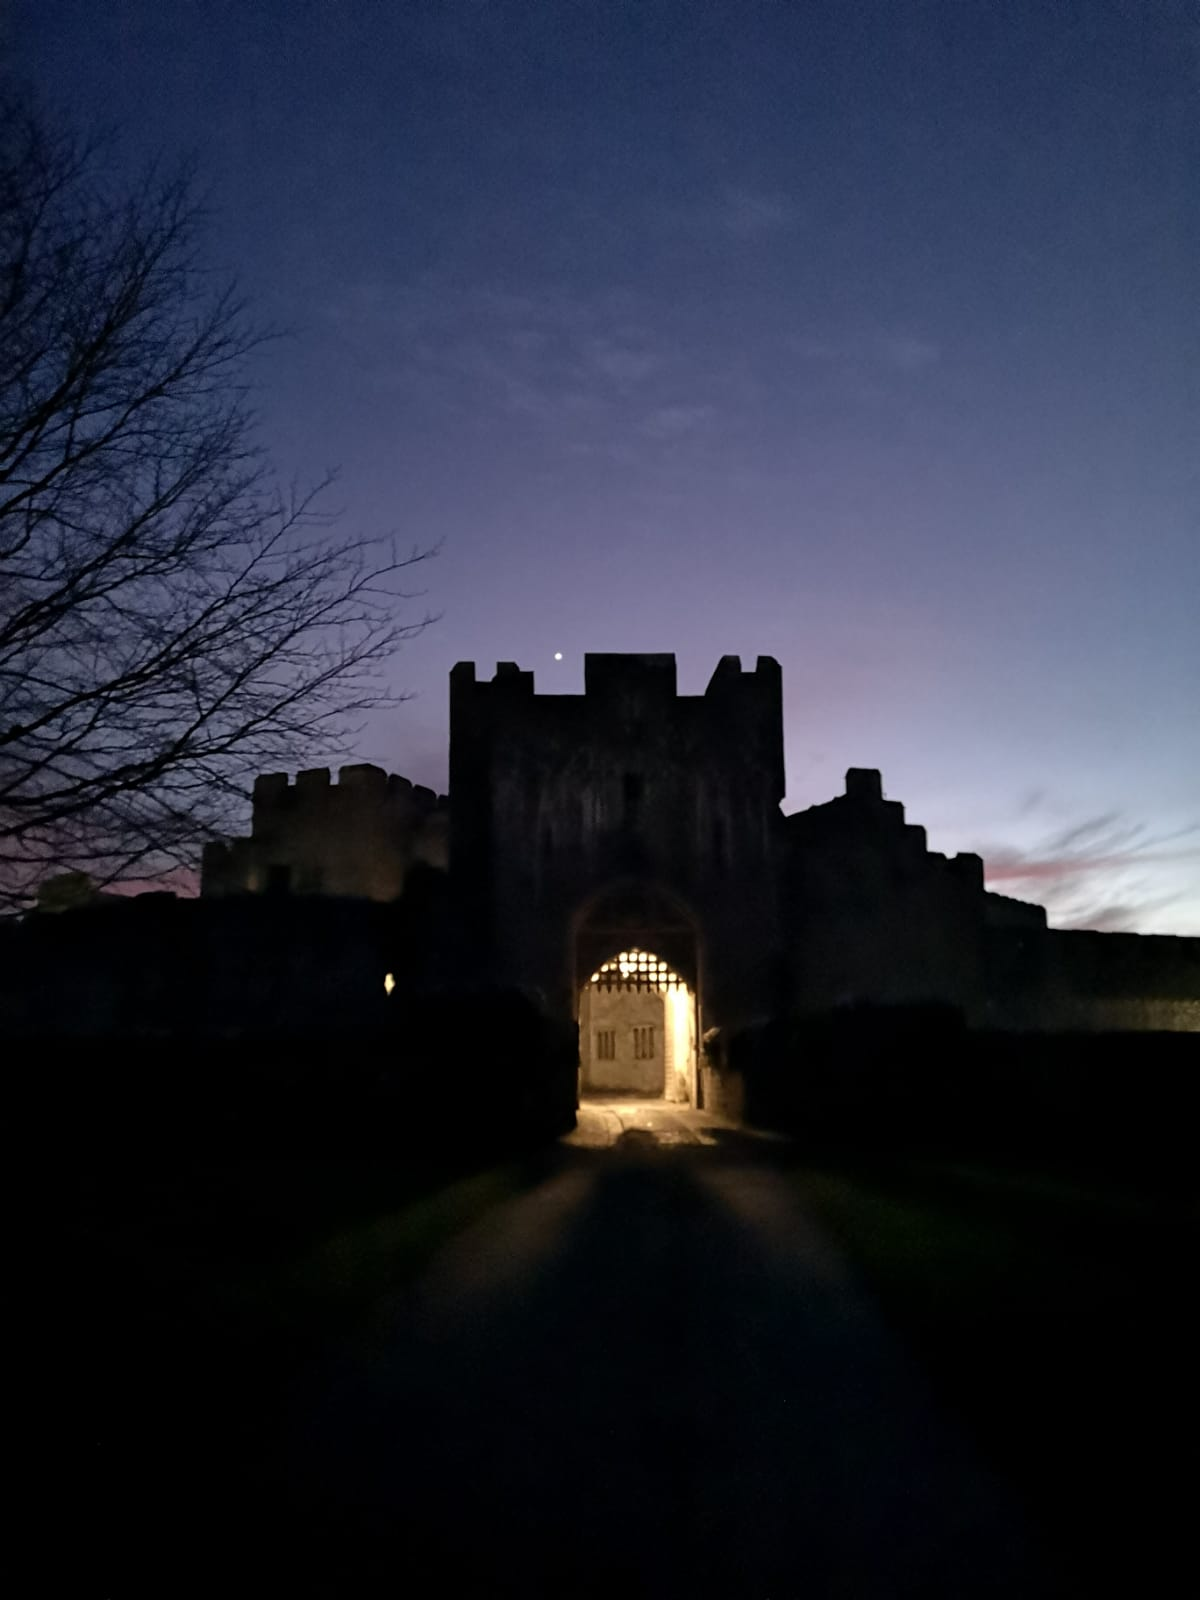 Halloween Spooktacular Film at St Donat's Castle: The Lost Boys